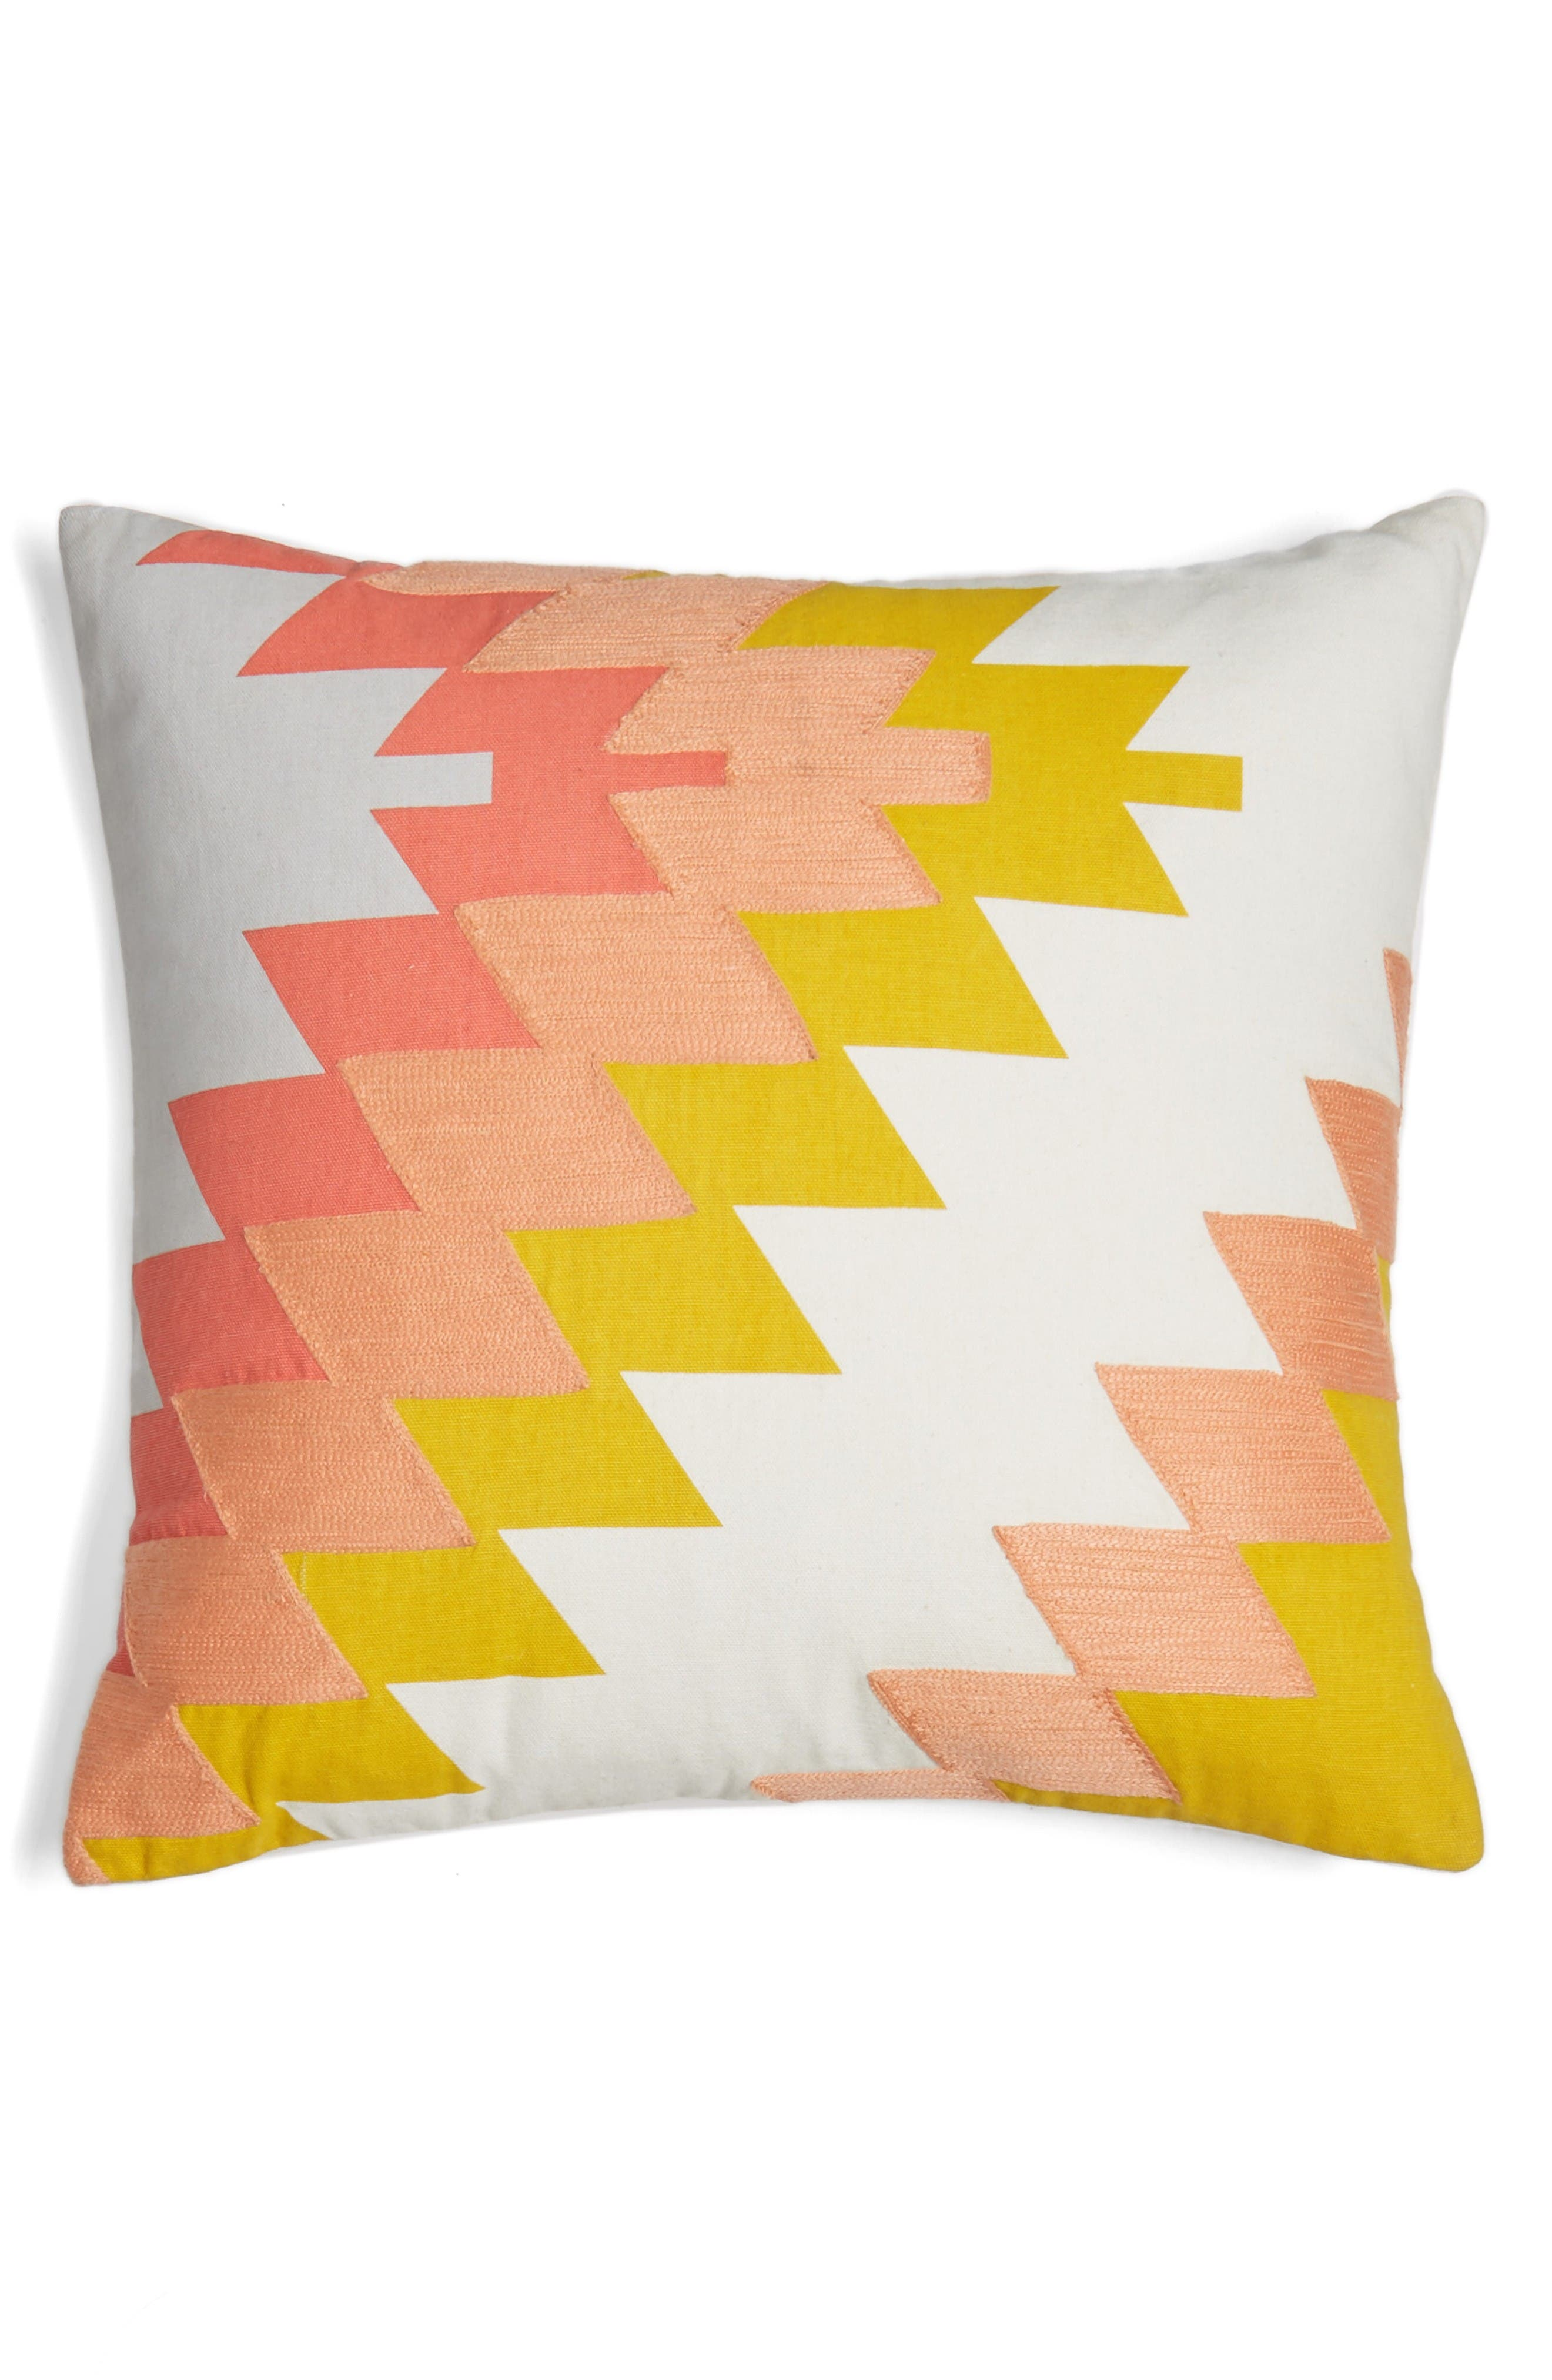 Nordstrom at Home Kilm Graphic Accent Pillow